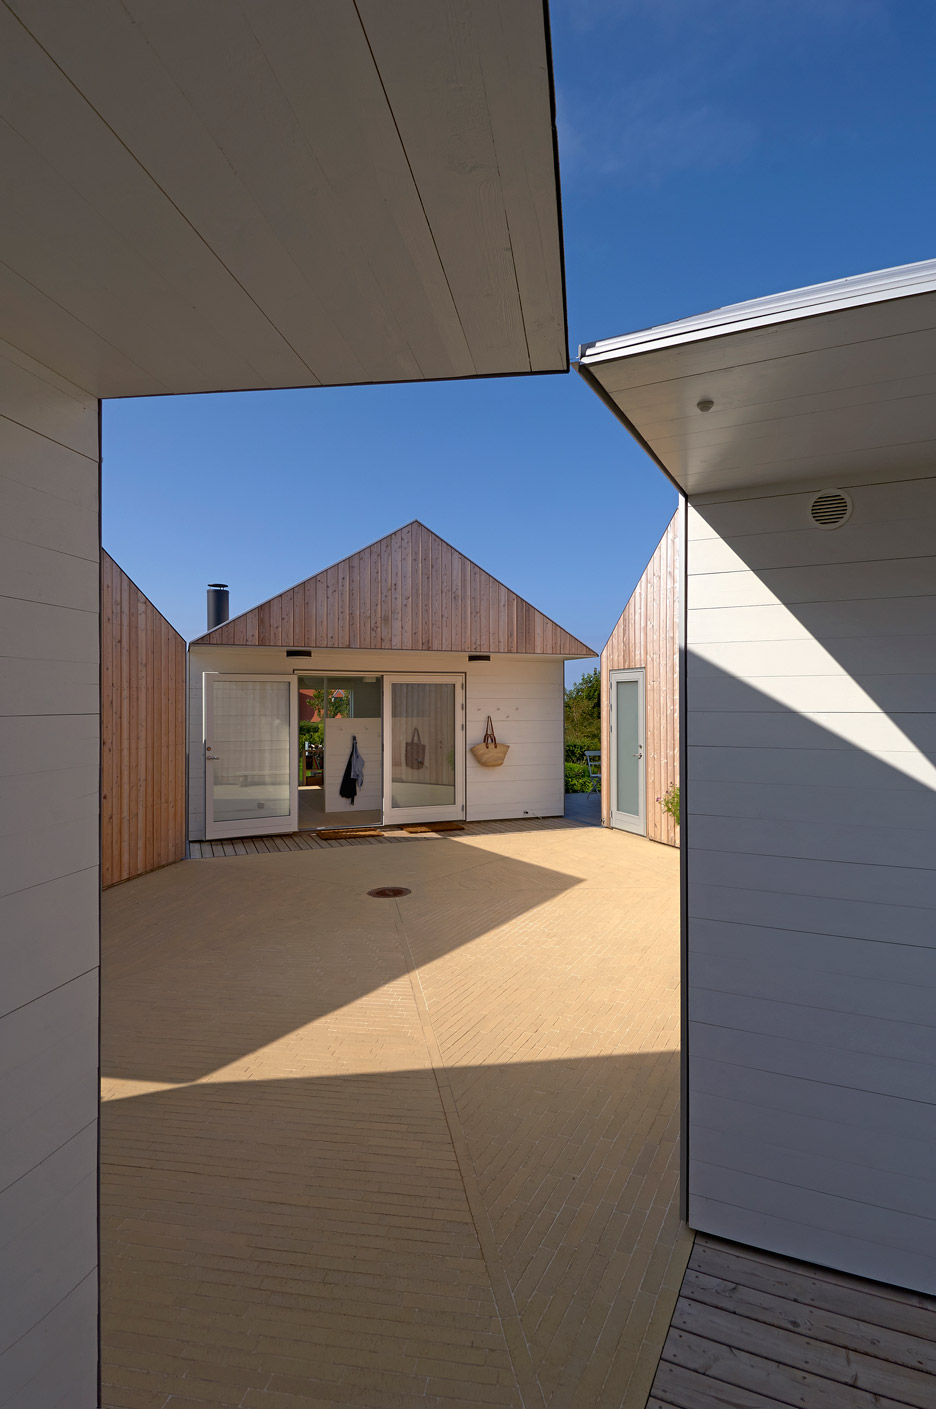 1 Building Was Split Into 5 To Create A Courtyard For A Family